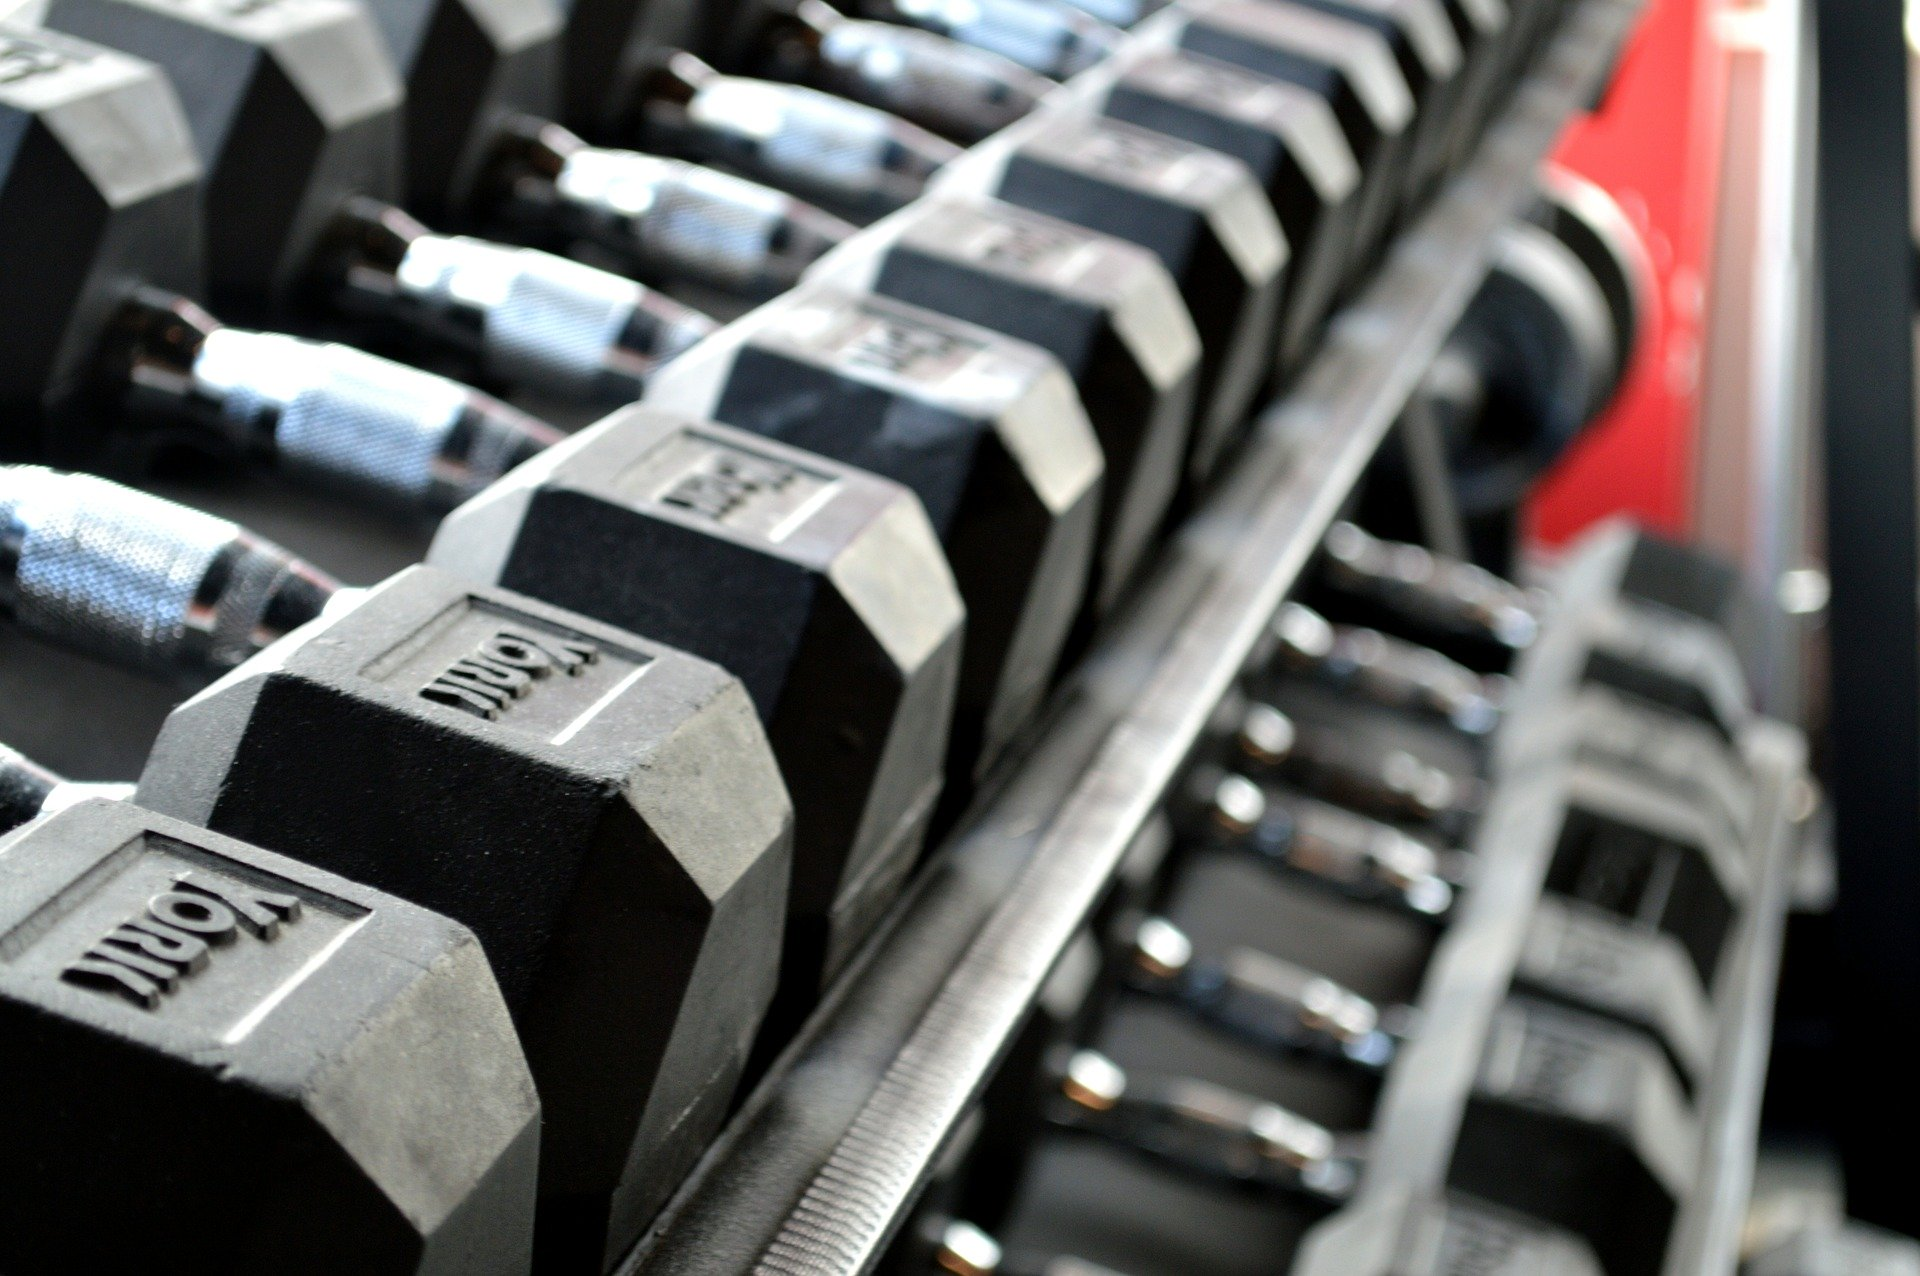 Fitness and Gym stocks news and analysis